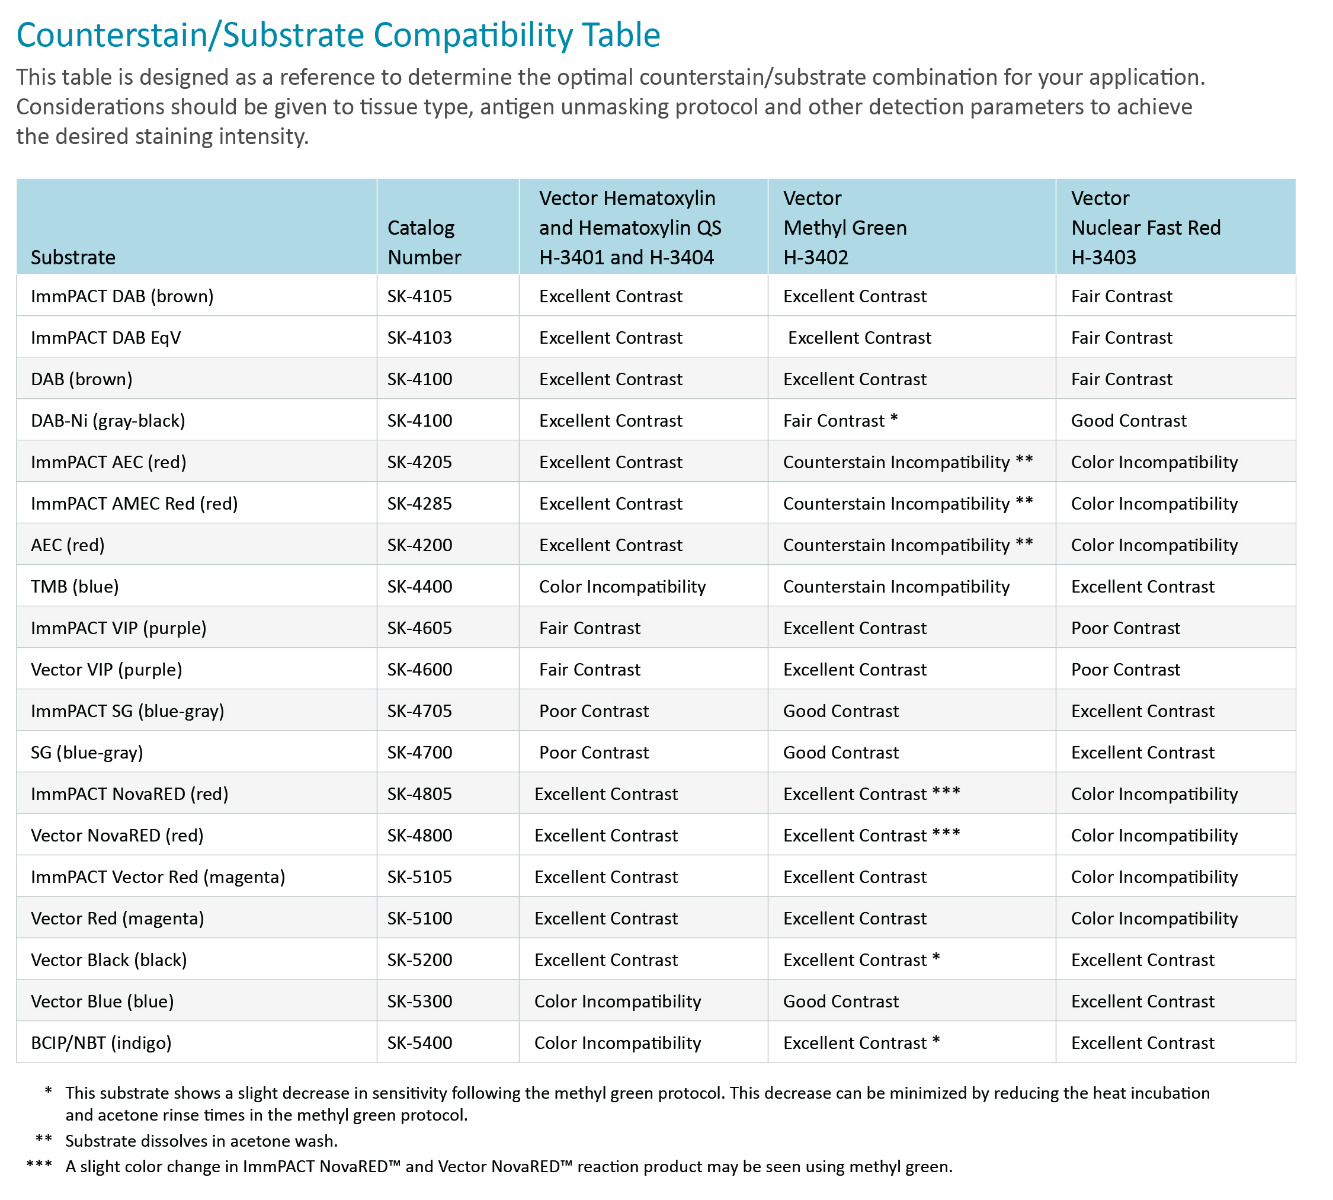 IHC counterstain / substrate compatibility table